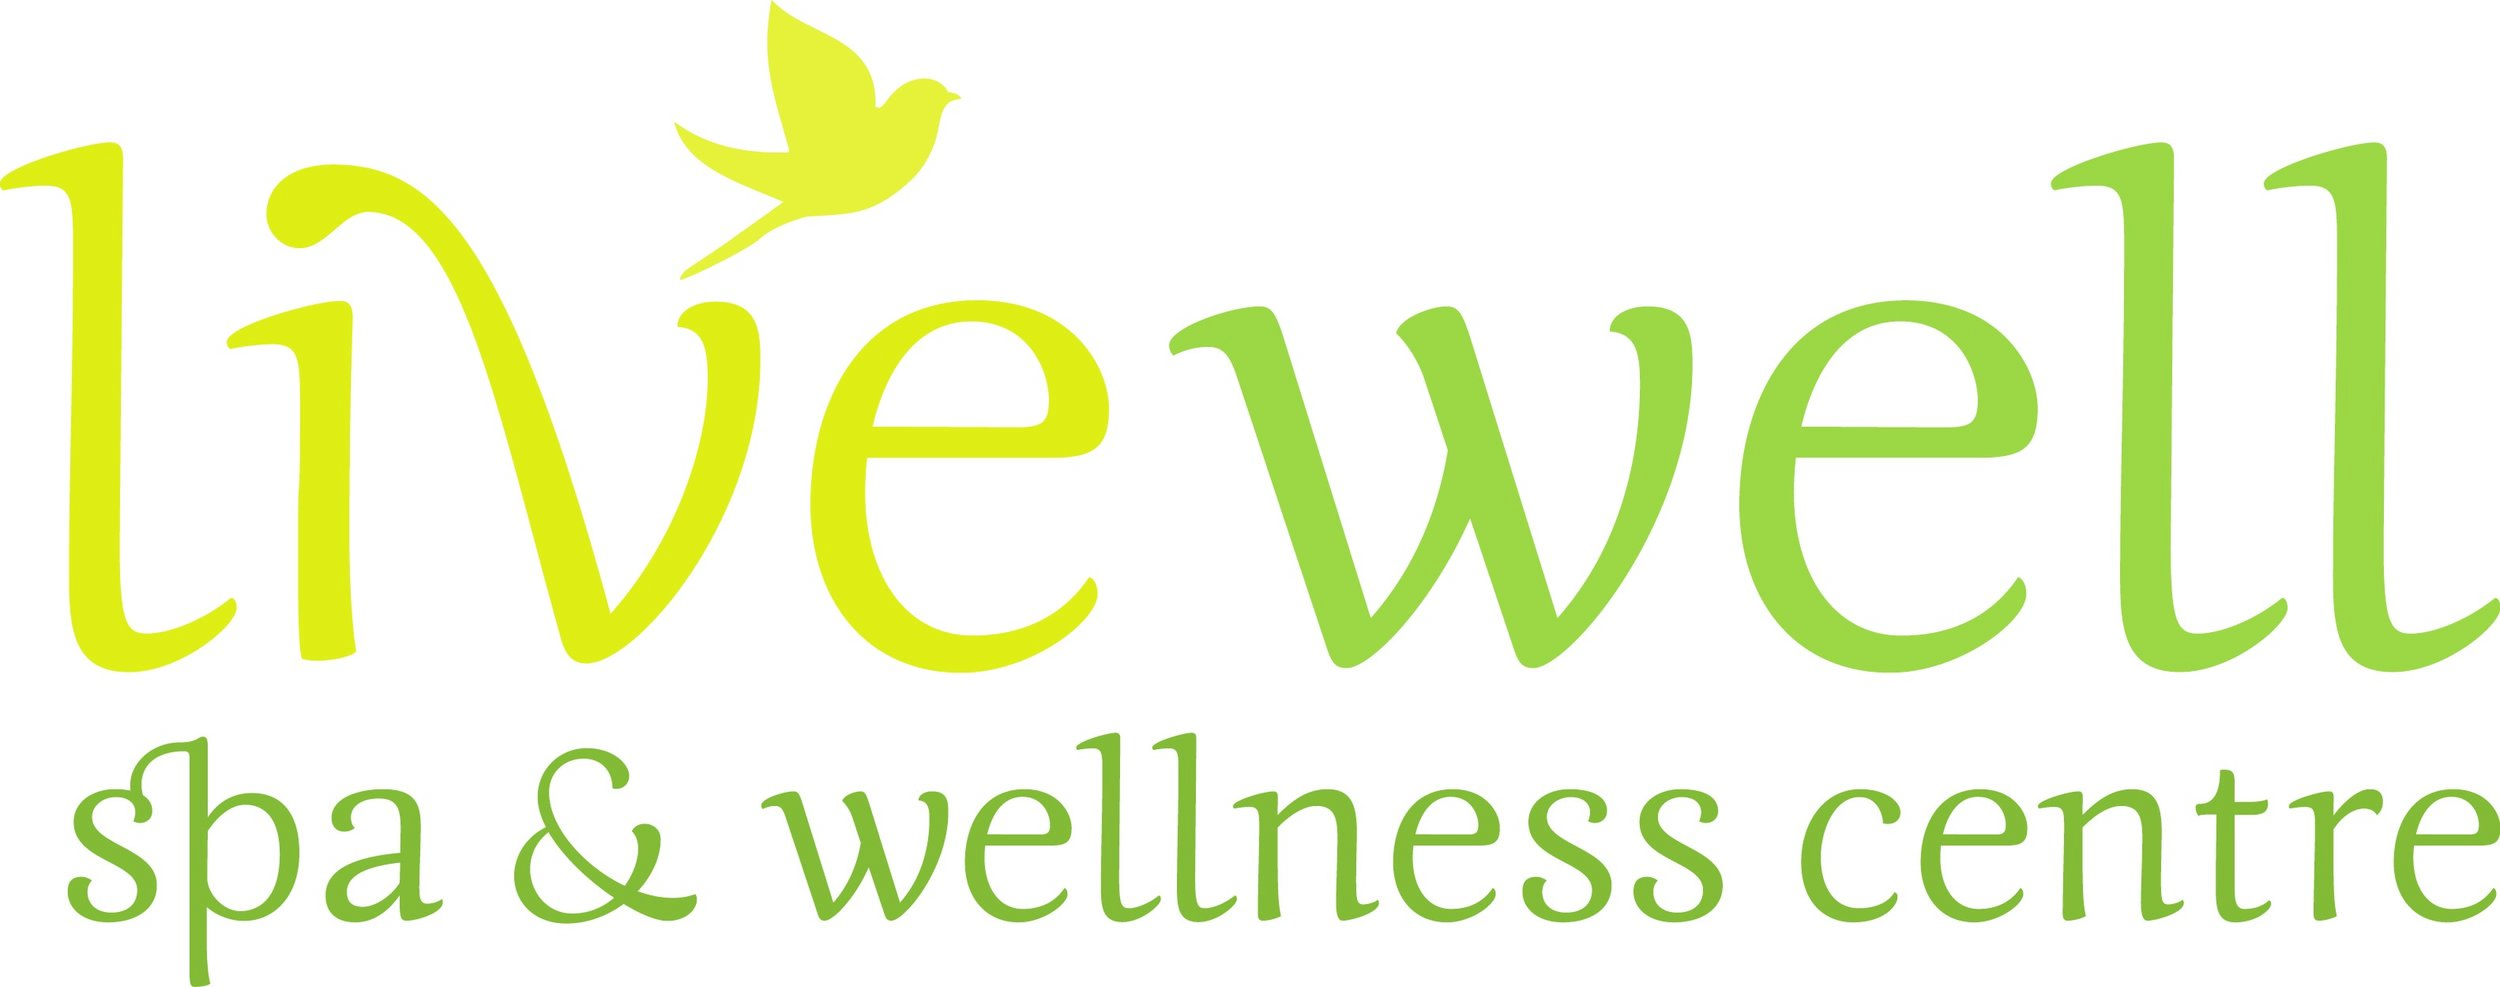 Live Well, a holistic solution for all your health needs. Live Well makes feeling better easy and accessible, whether you are looking for a pampering massage or a complete health overhaul. Live Well was represented by Kate Pamphilon, a kinesiologist whose integrative approach to health and healing is inspiring to see.  Book with Kate or another practitioner at Live Well here.